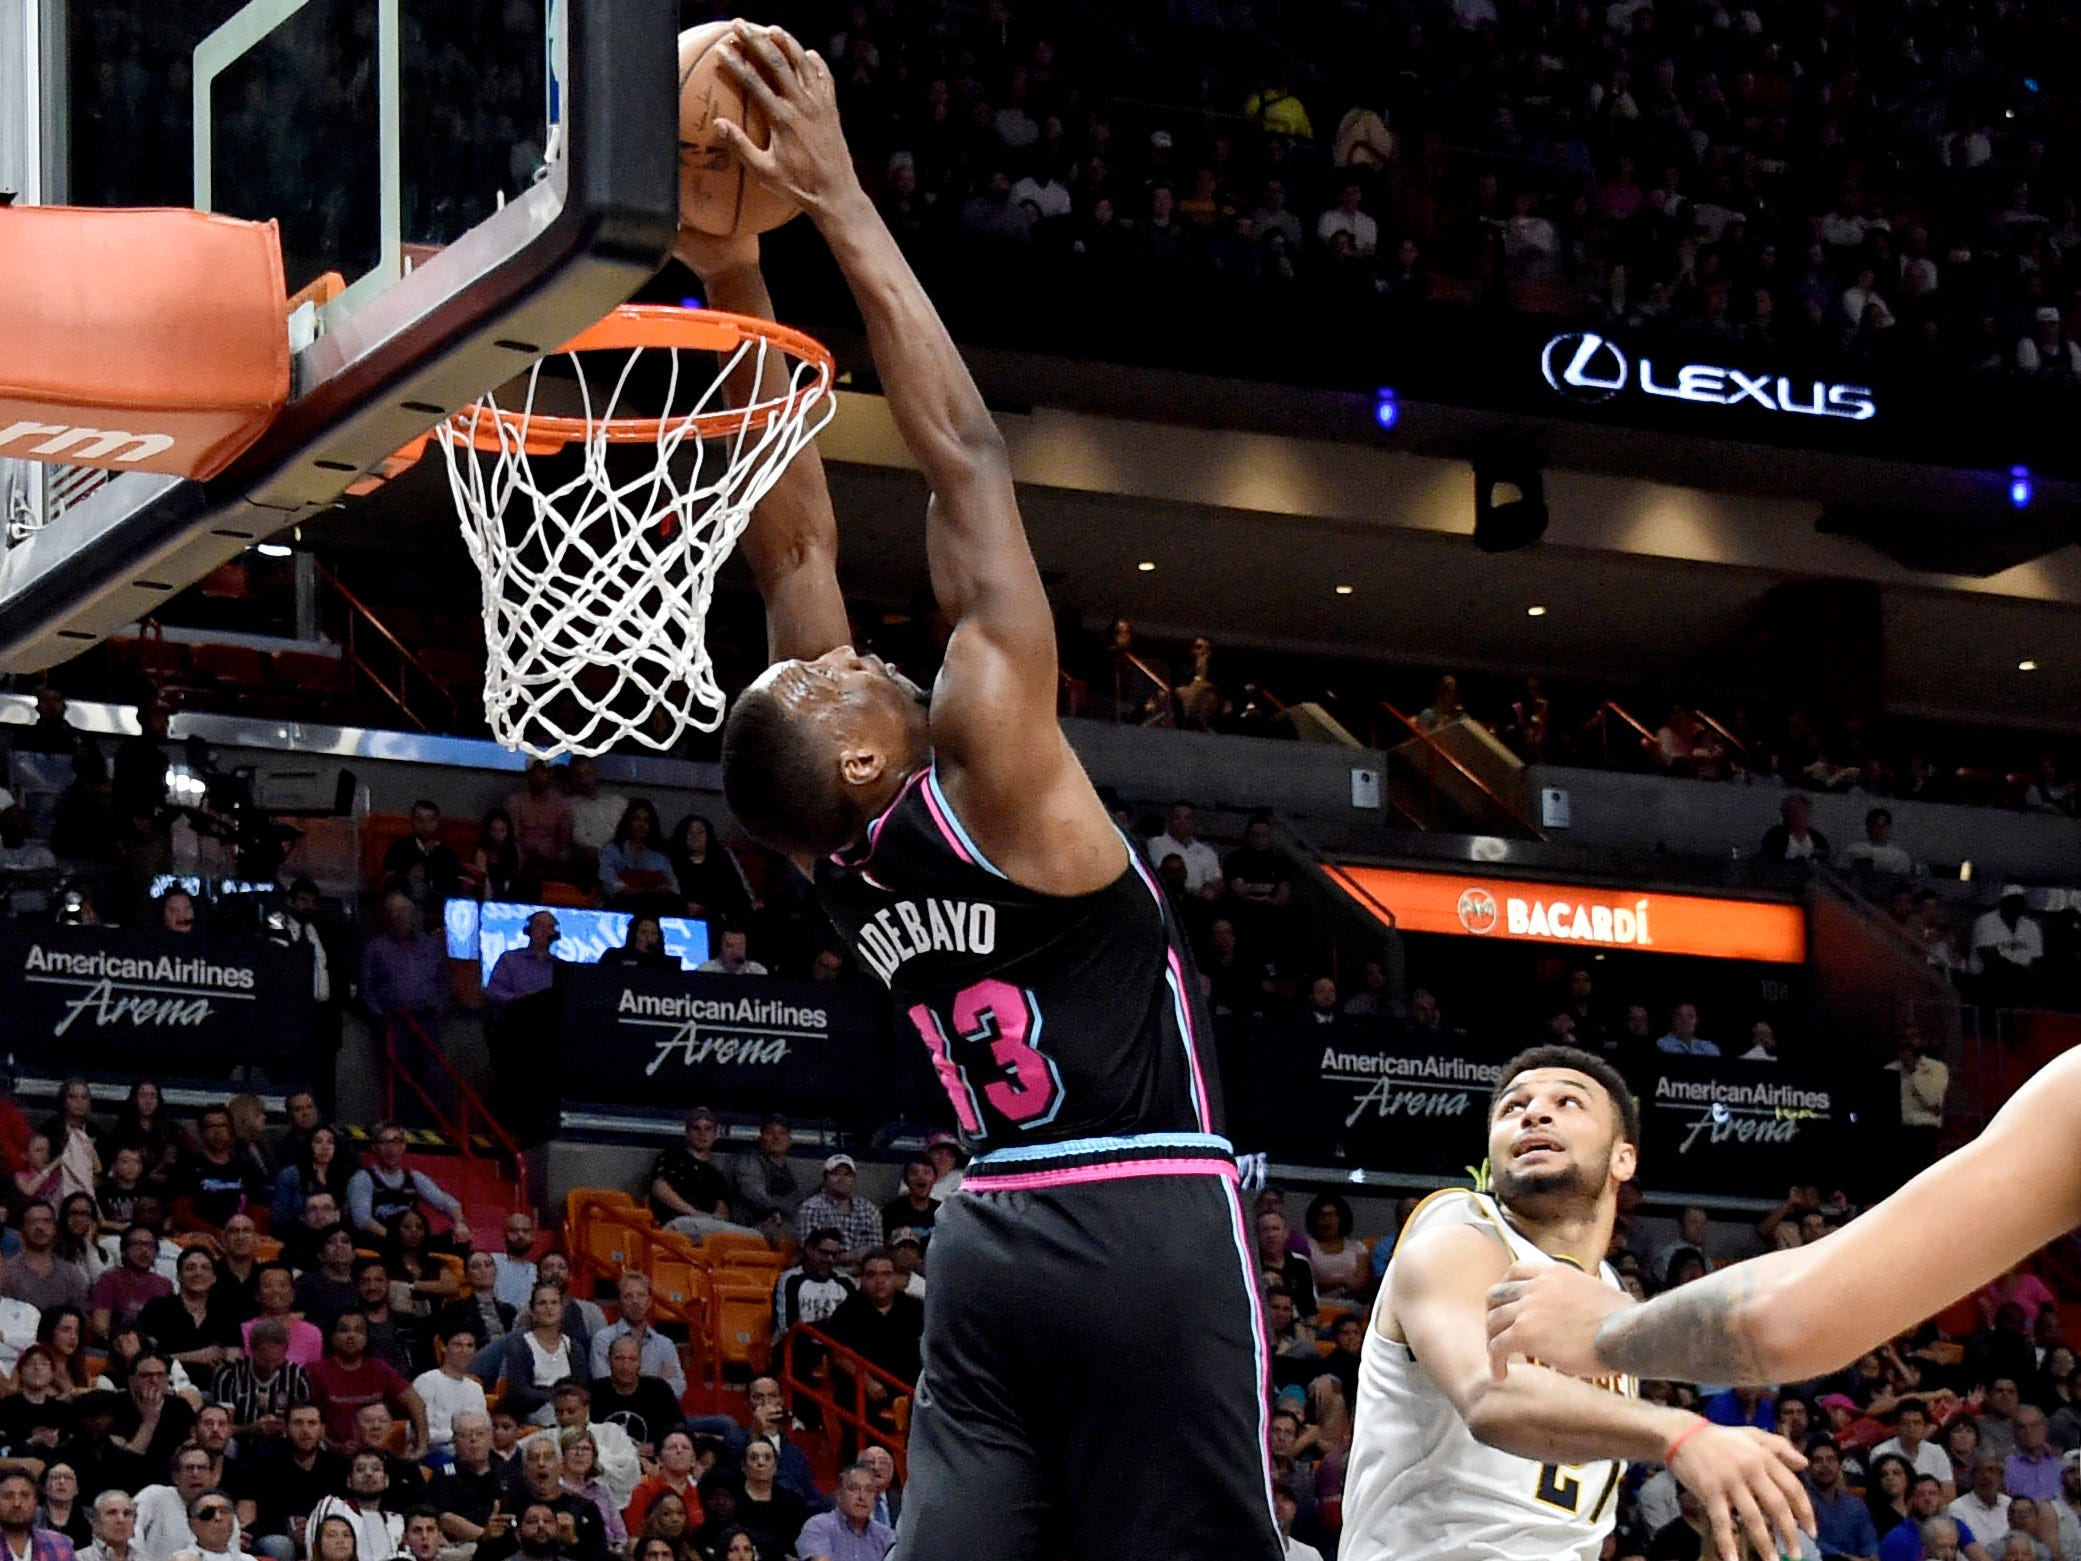 Jan. 8: The Miami Heat's Bam Adebayo dunks against the Denver Nuggets at American Airlines Arena.